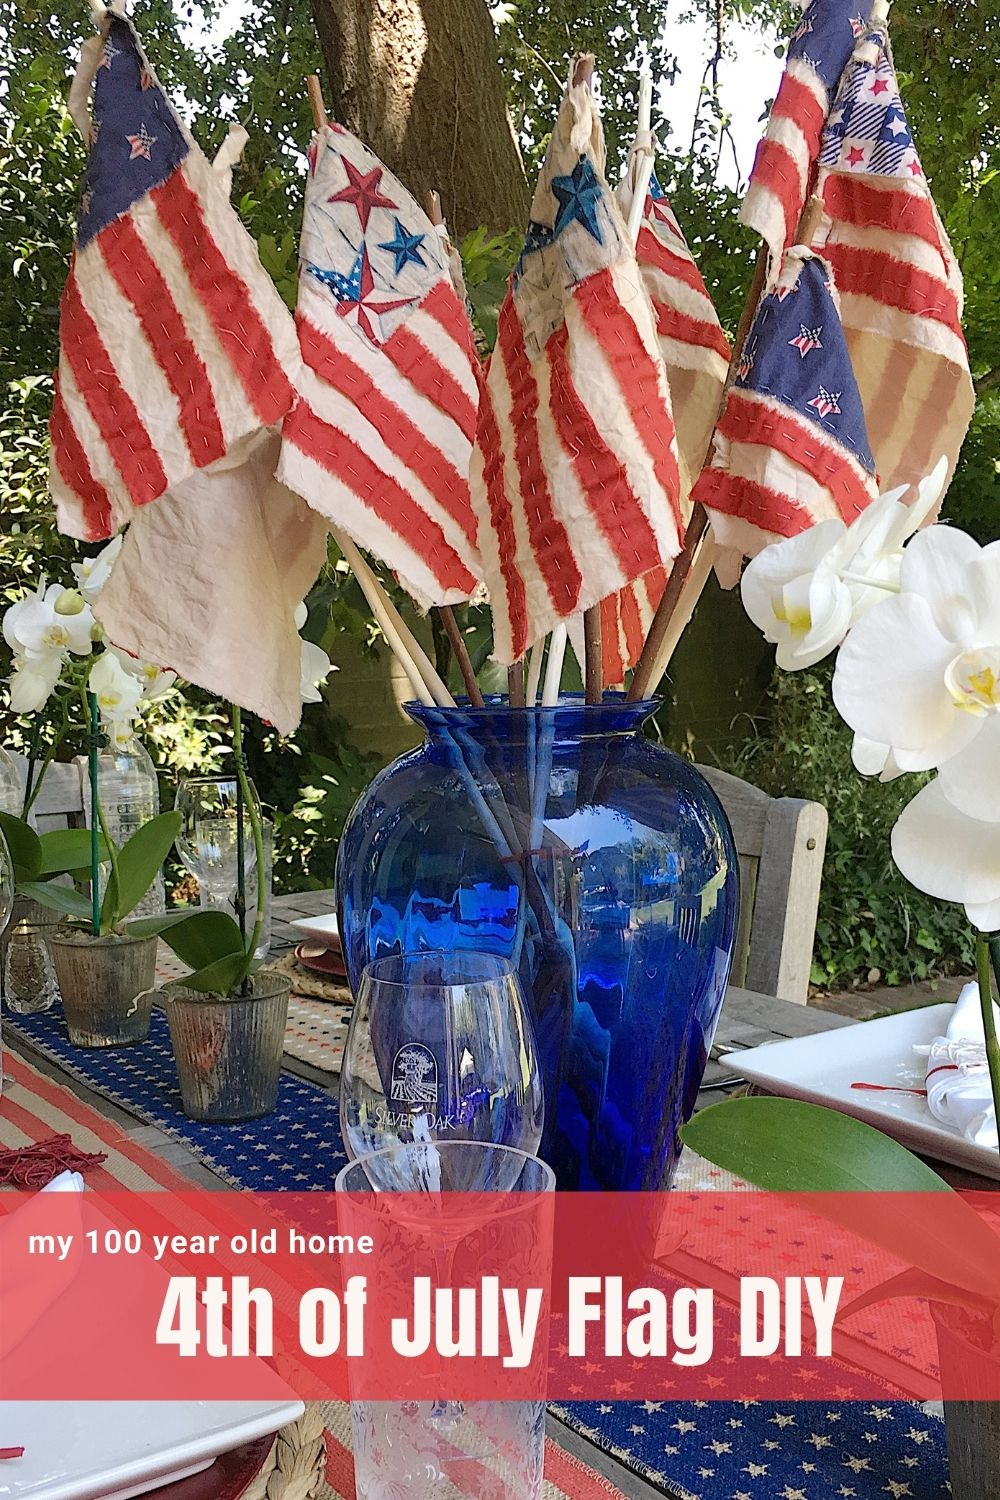 Fourth of July is in three weeks and I wanted to share the hand sewn 4th of July flag ideas I made for my table. These are a great DIY for the 4th of July and I thought you may love these flags.